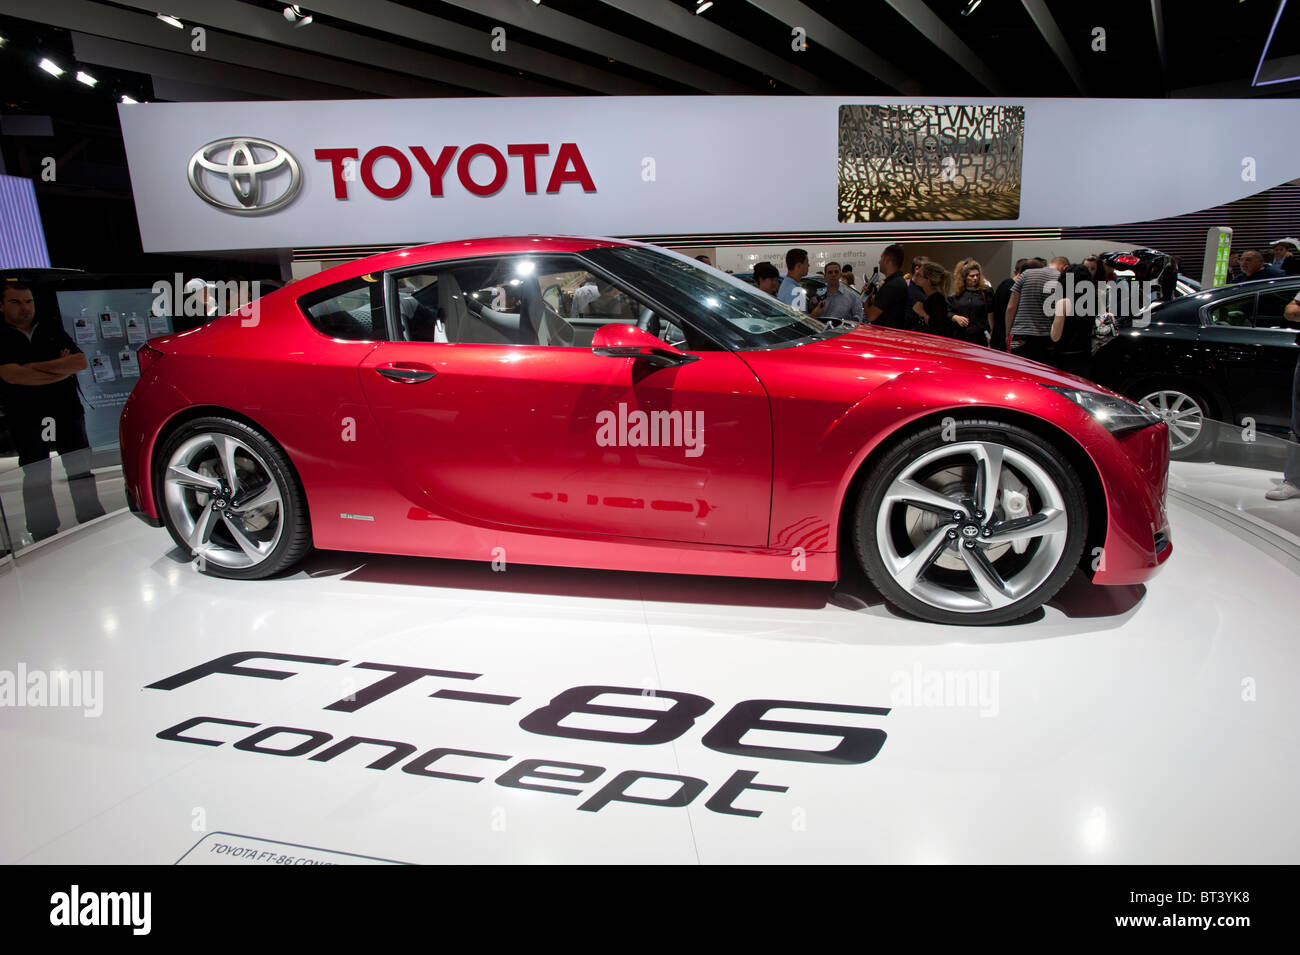 Toyota FT-86 concept car en Paris Motor Show 2010 Imagen De Stock